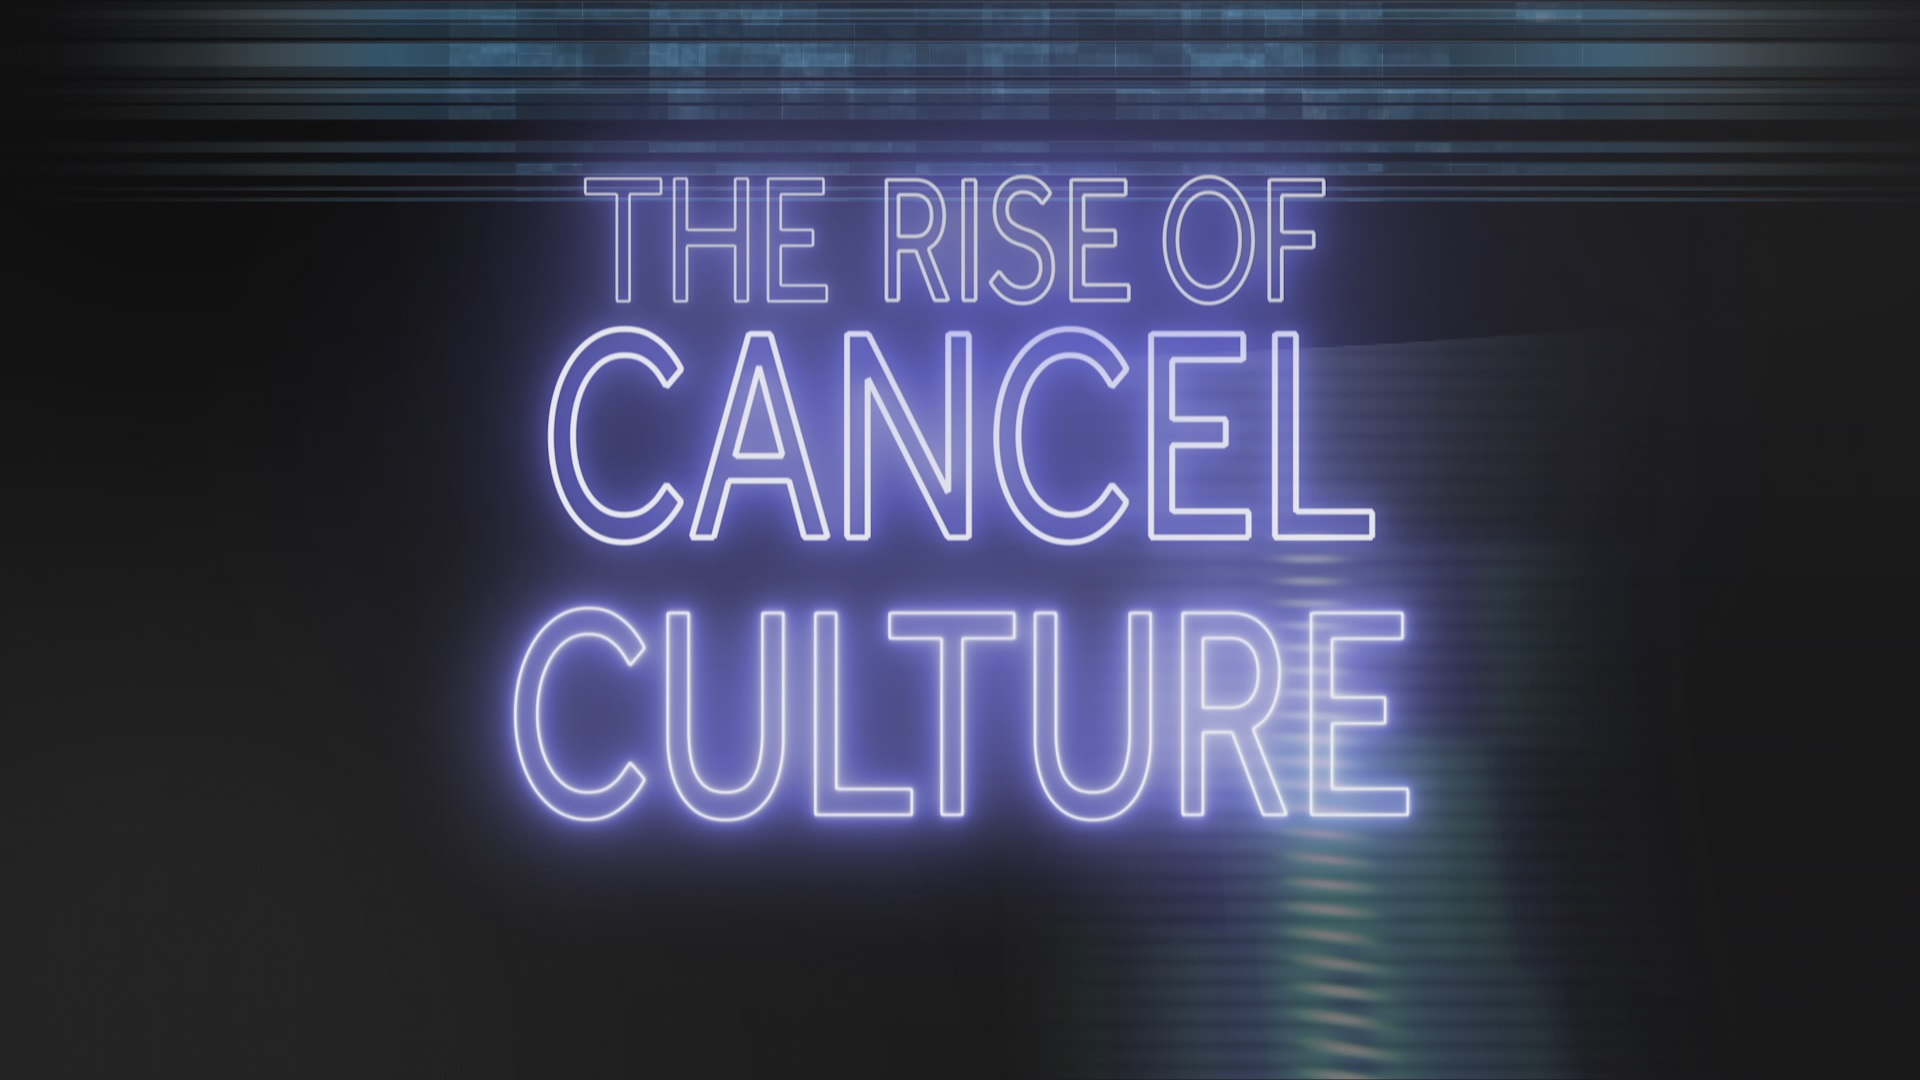 The Rise of Cancel Culture